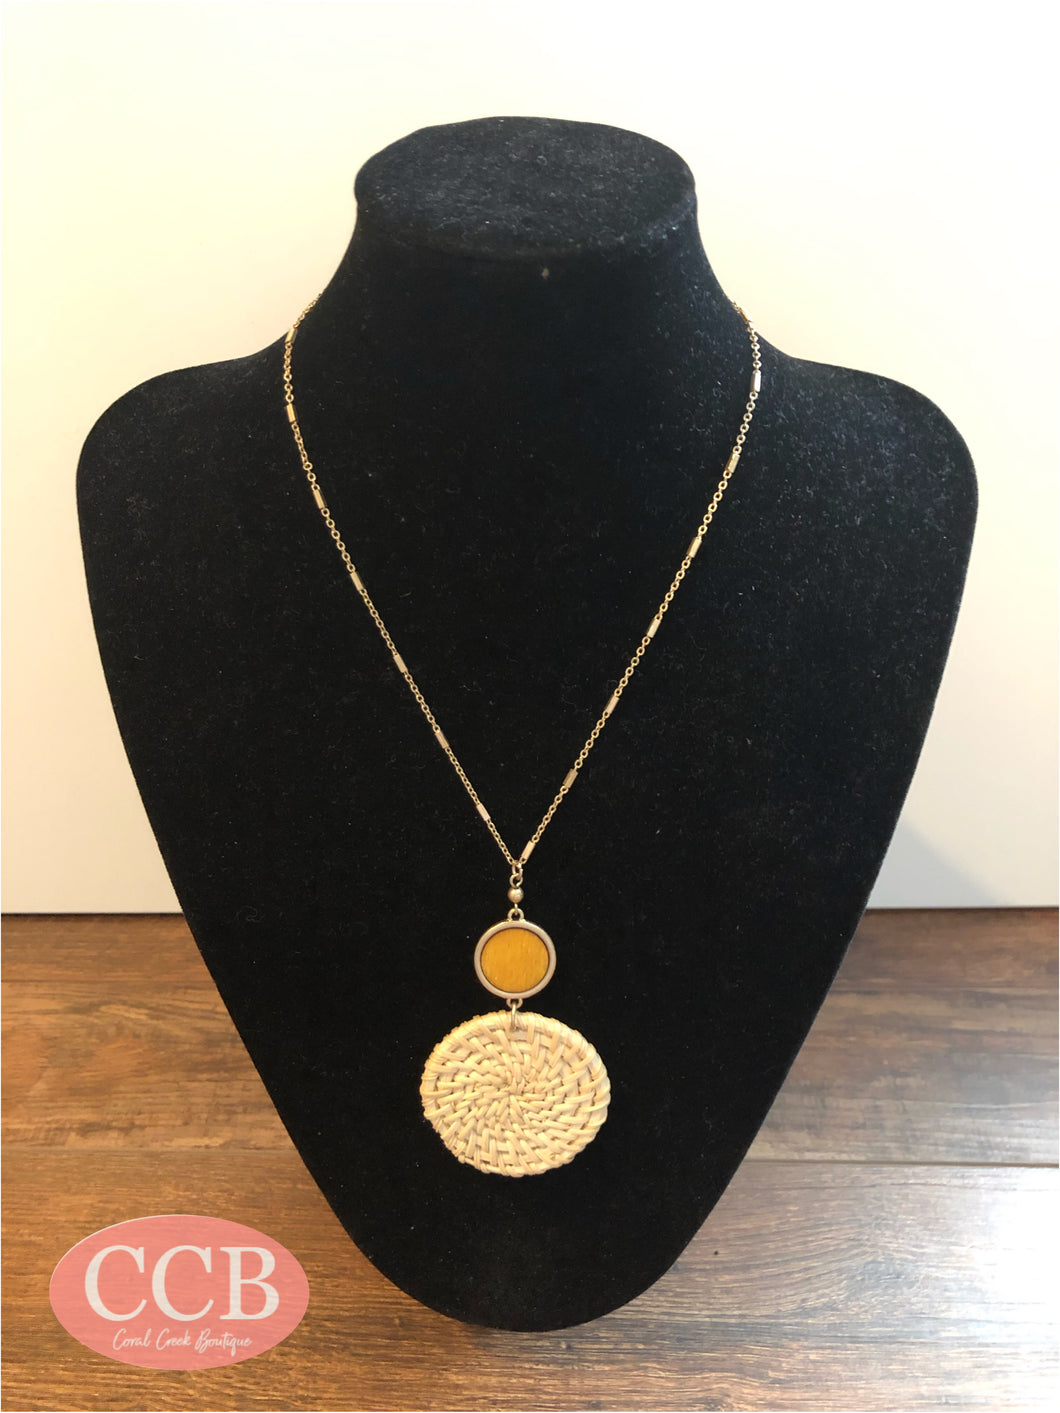 Necklace w/ Earrings - Round Neutral